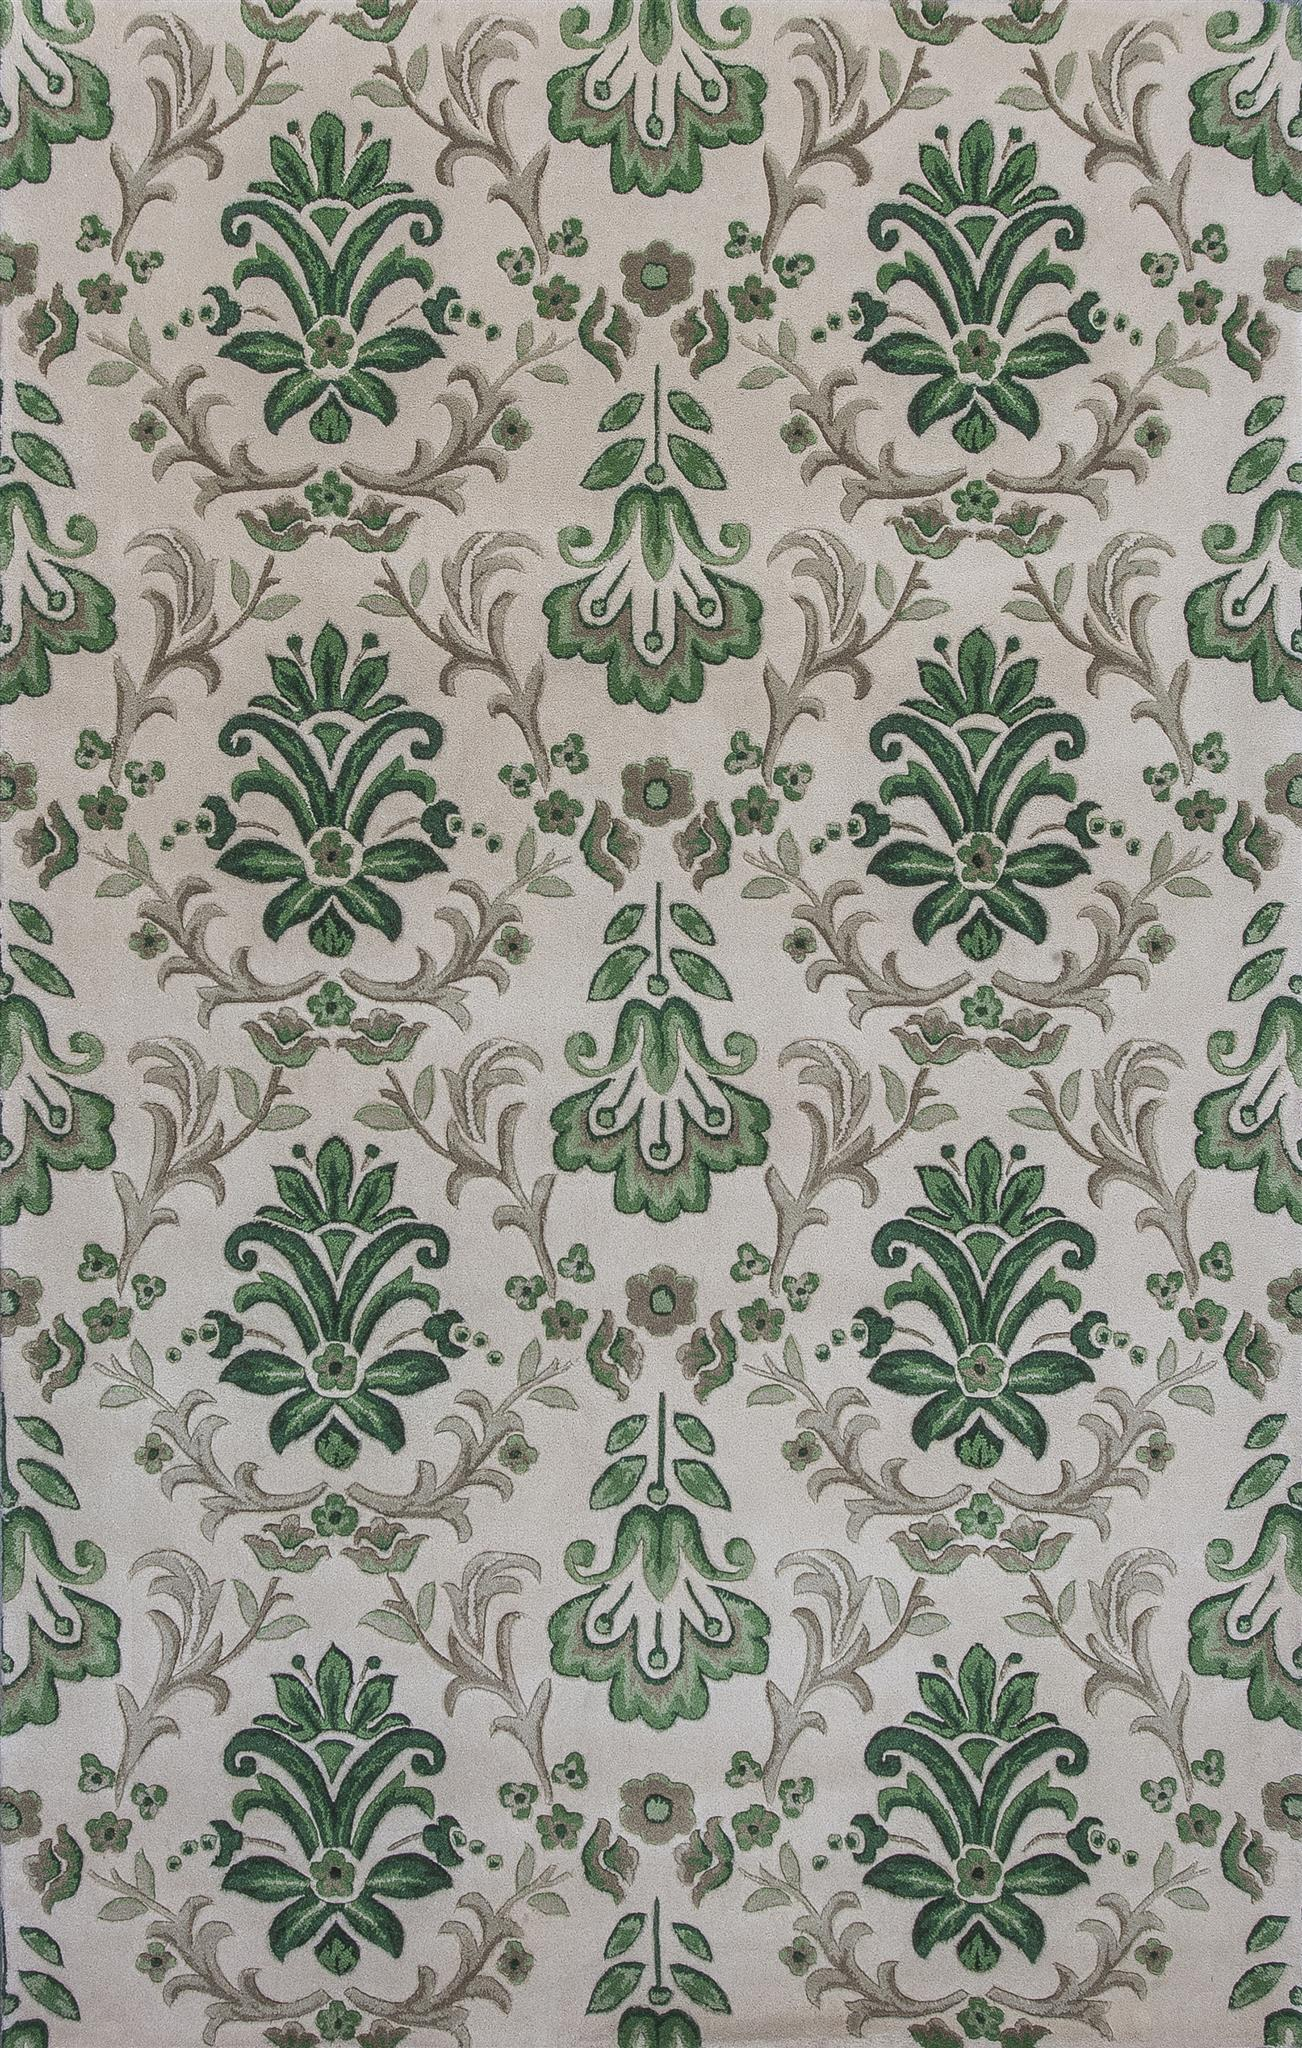 Emerald 9038 Ivory/Green Damask